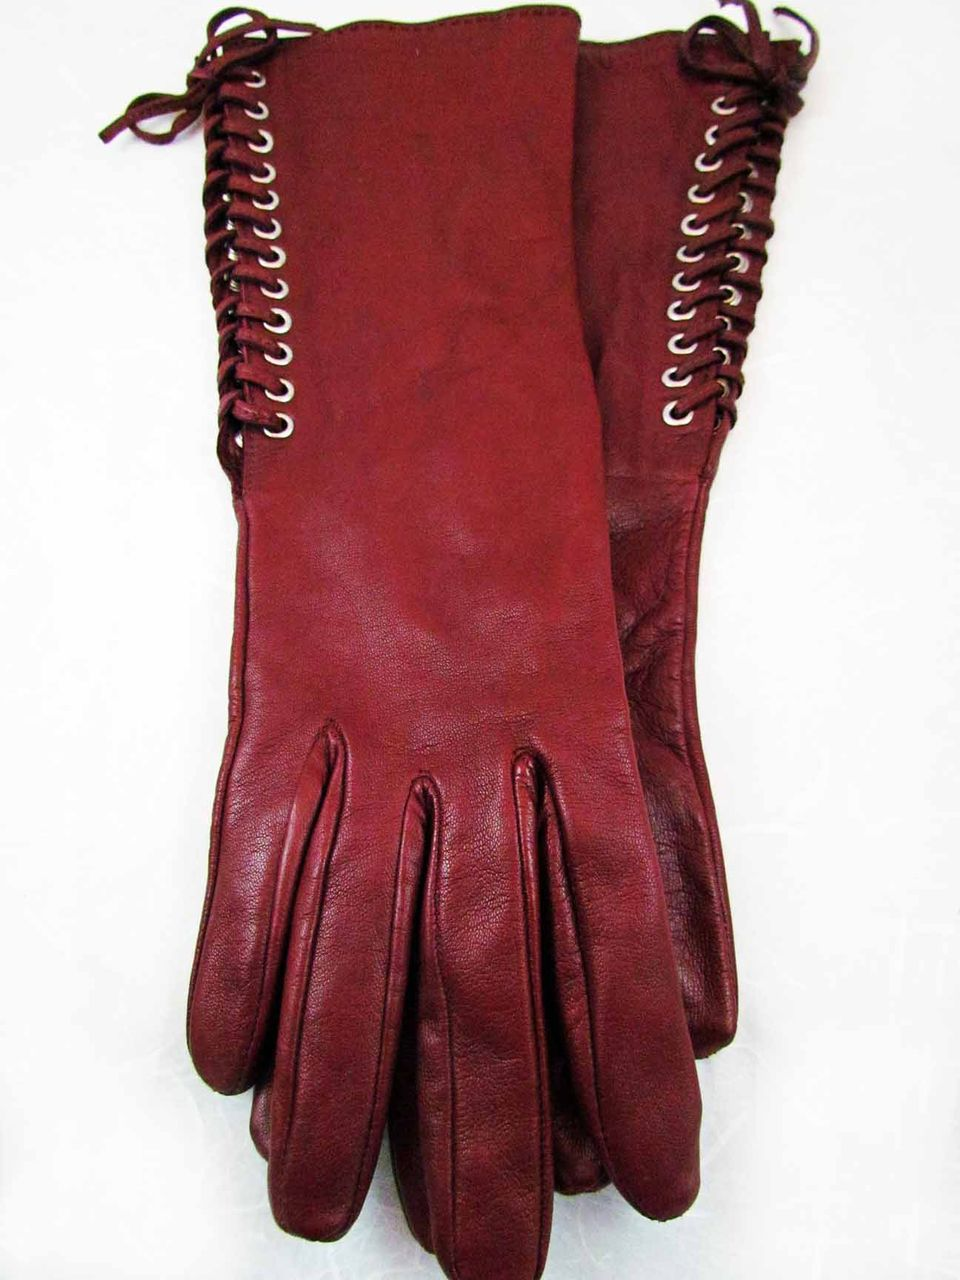 Ladies leather gloves large - Vintage Georges Rech Burgundy Ladies Leather Gloves